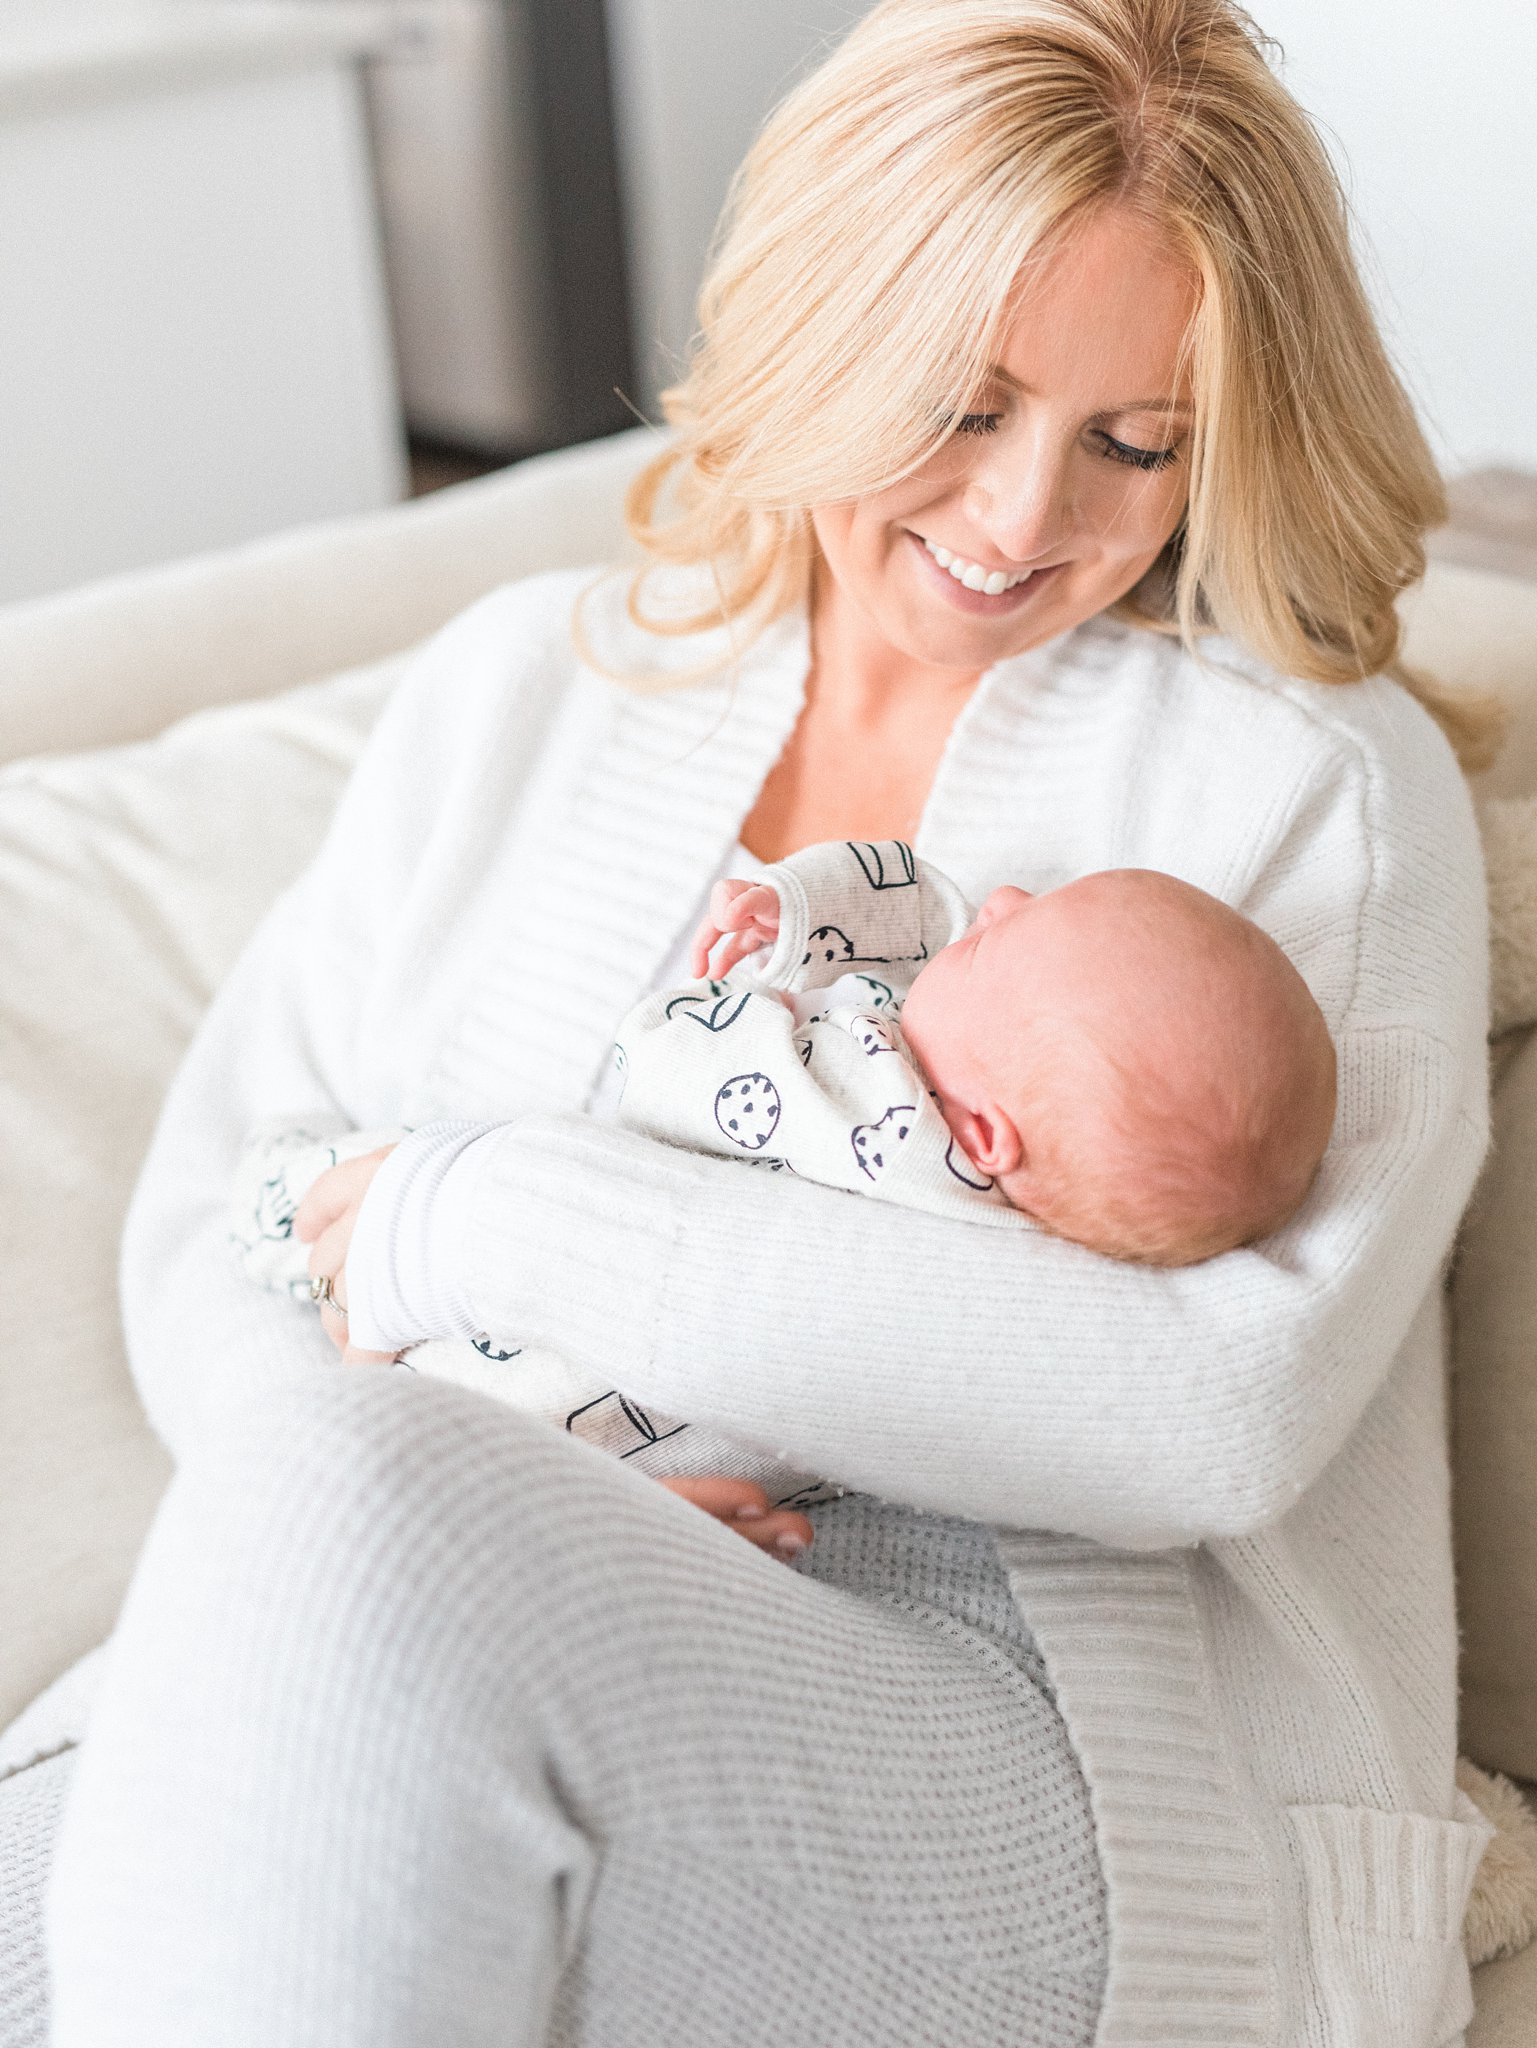 Mother cuddles baby, Festive Newborn Lifestyle Photos During the Christmas Holidays